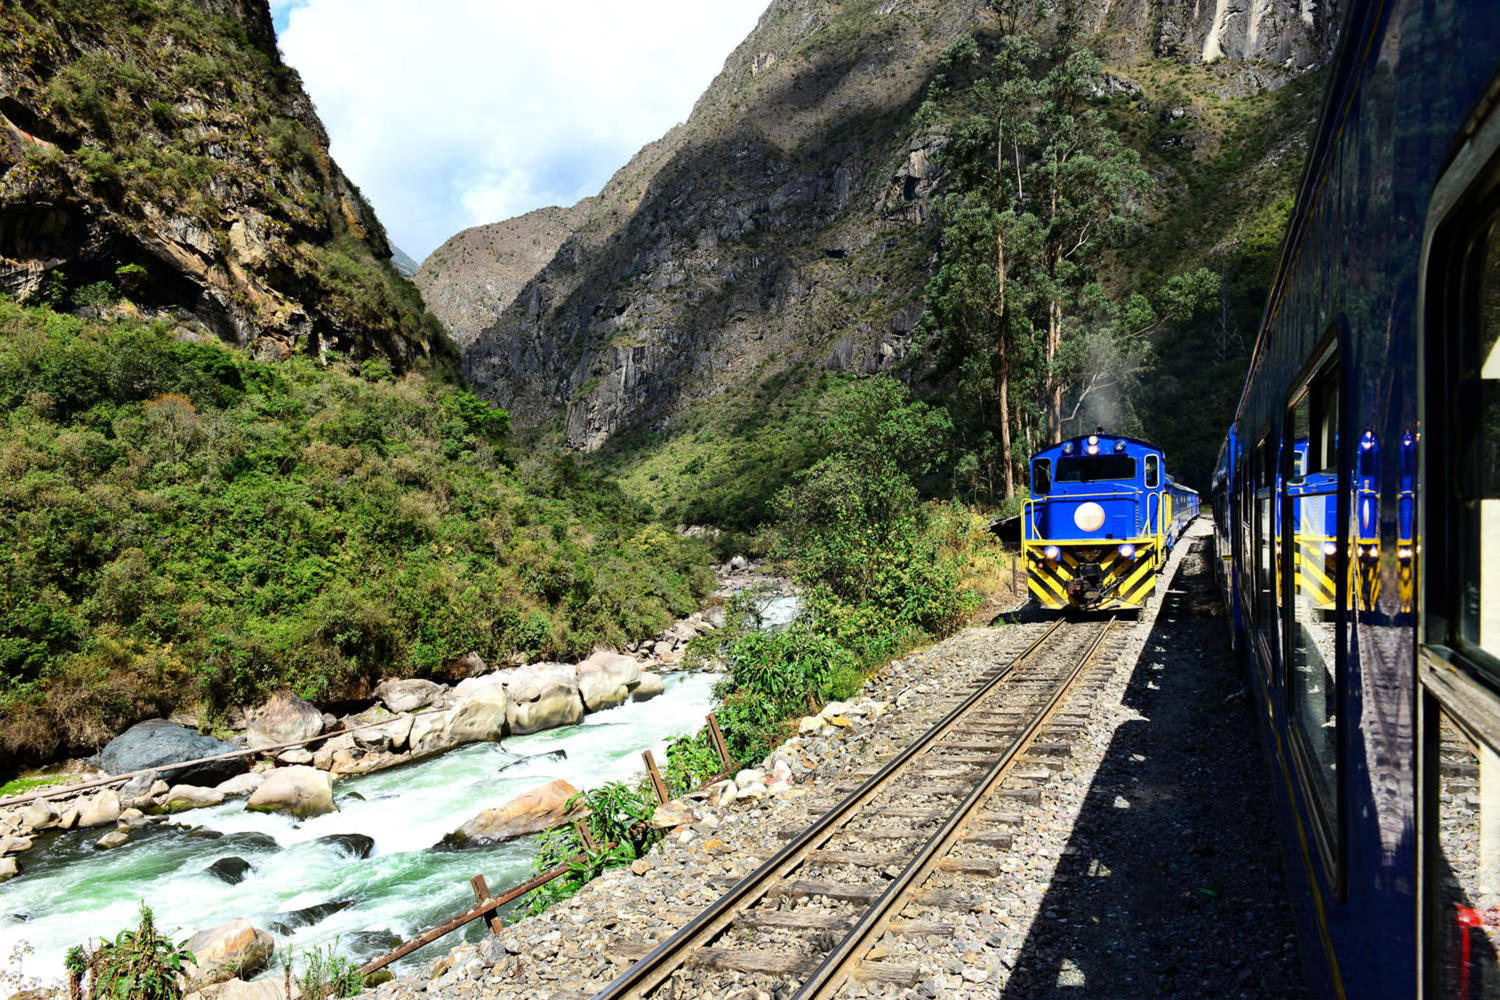 The railway to Machu Picchu